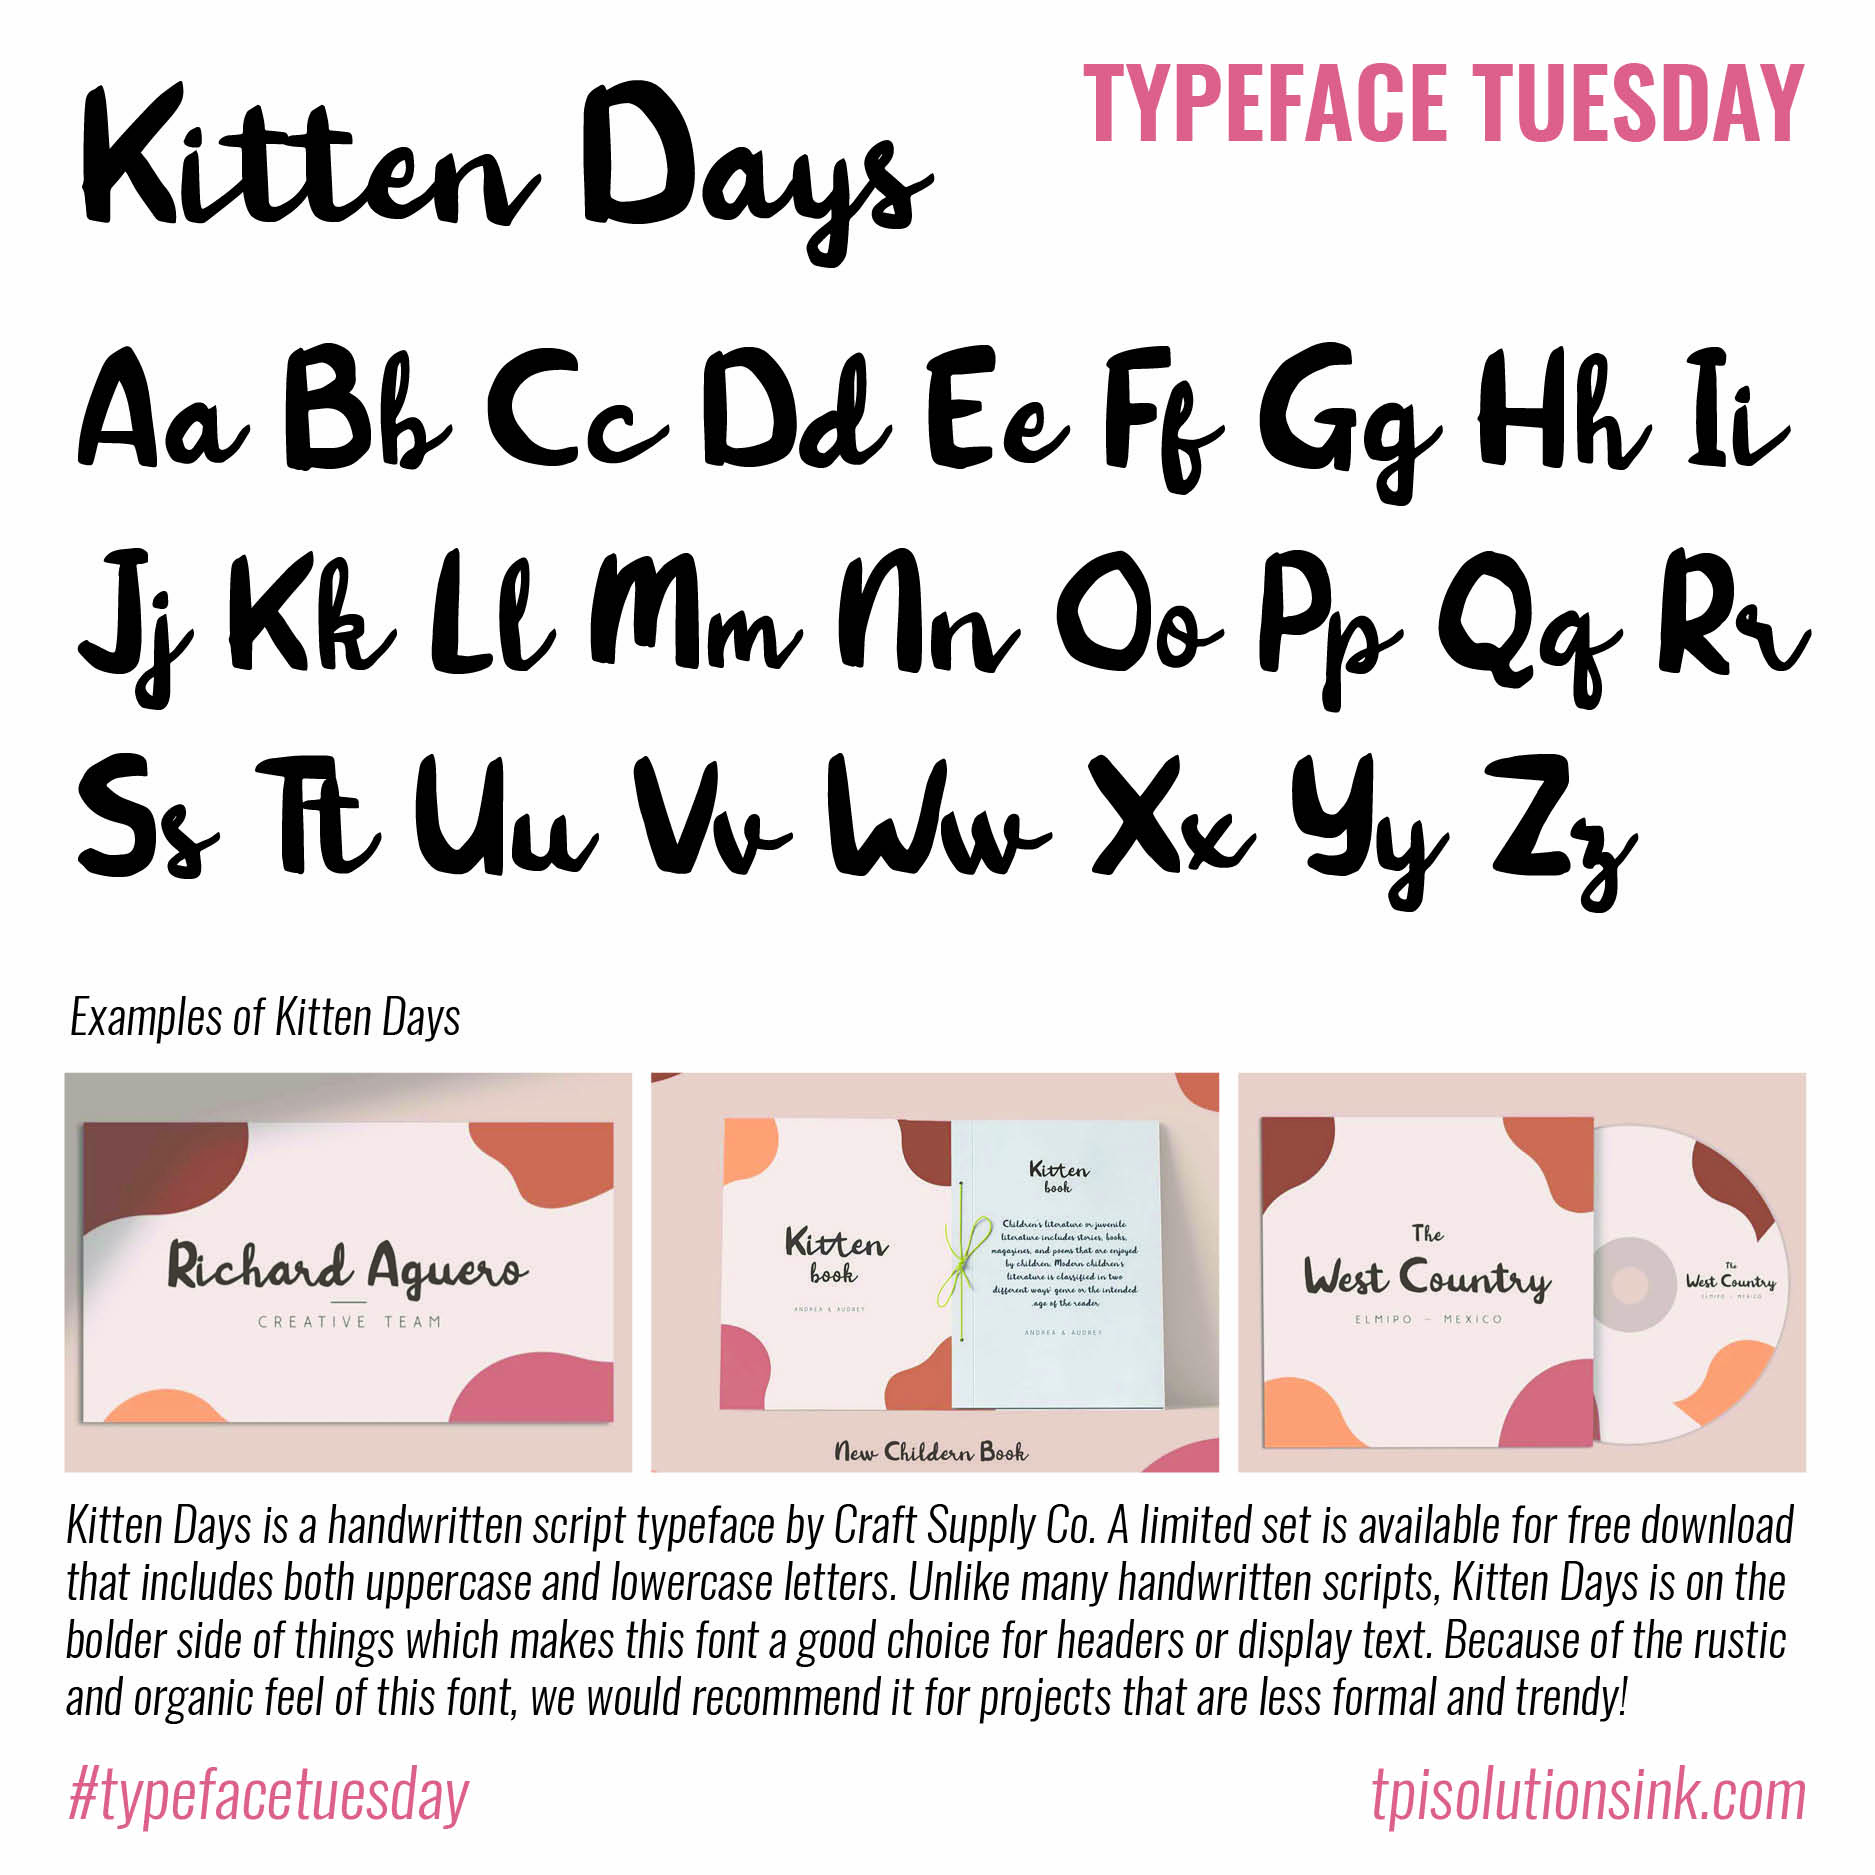 Typeface Tuesday – Kitten Days